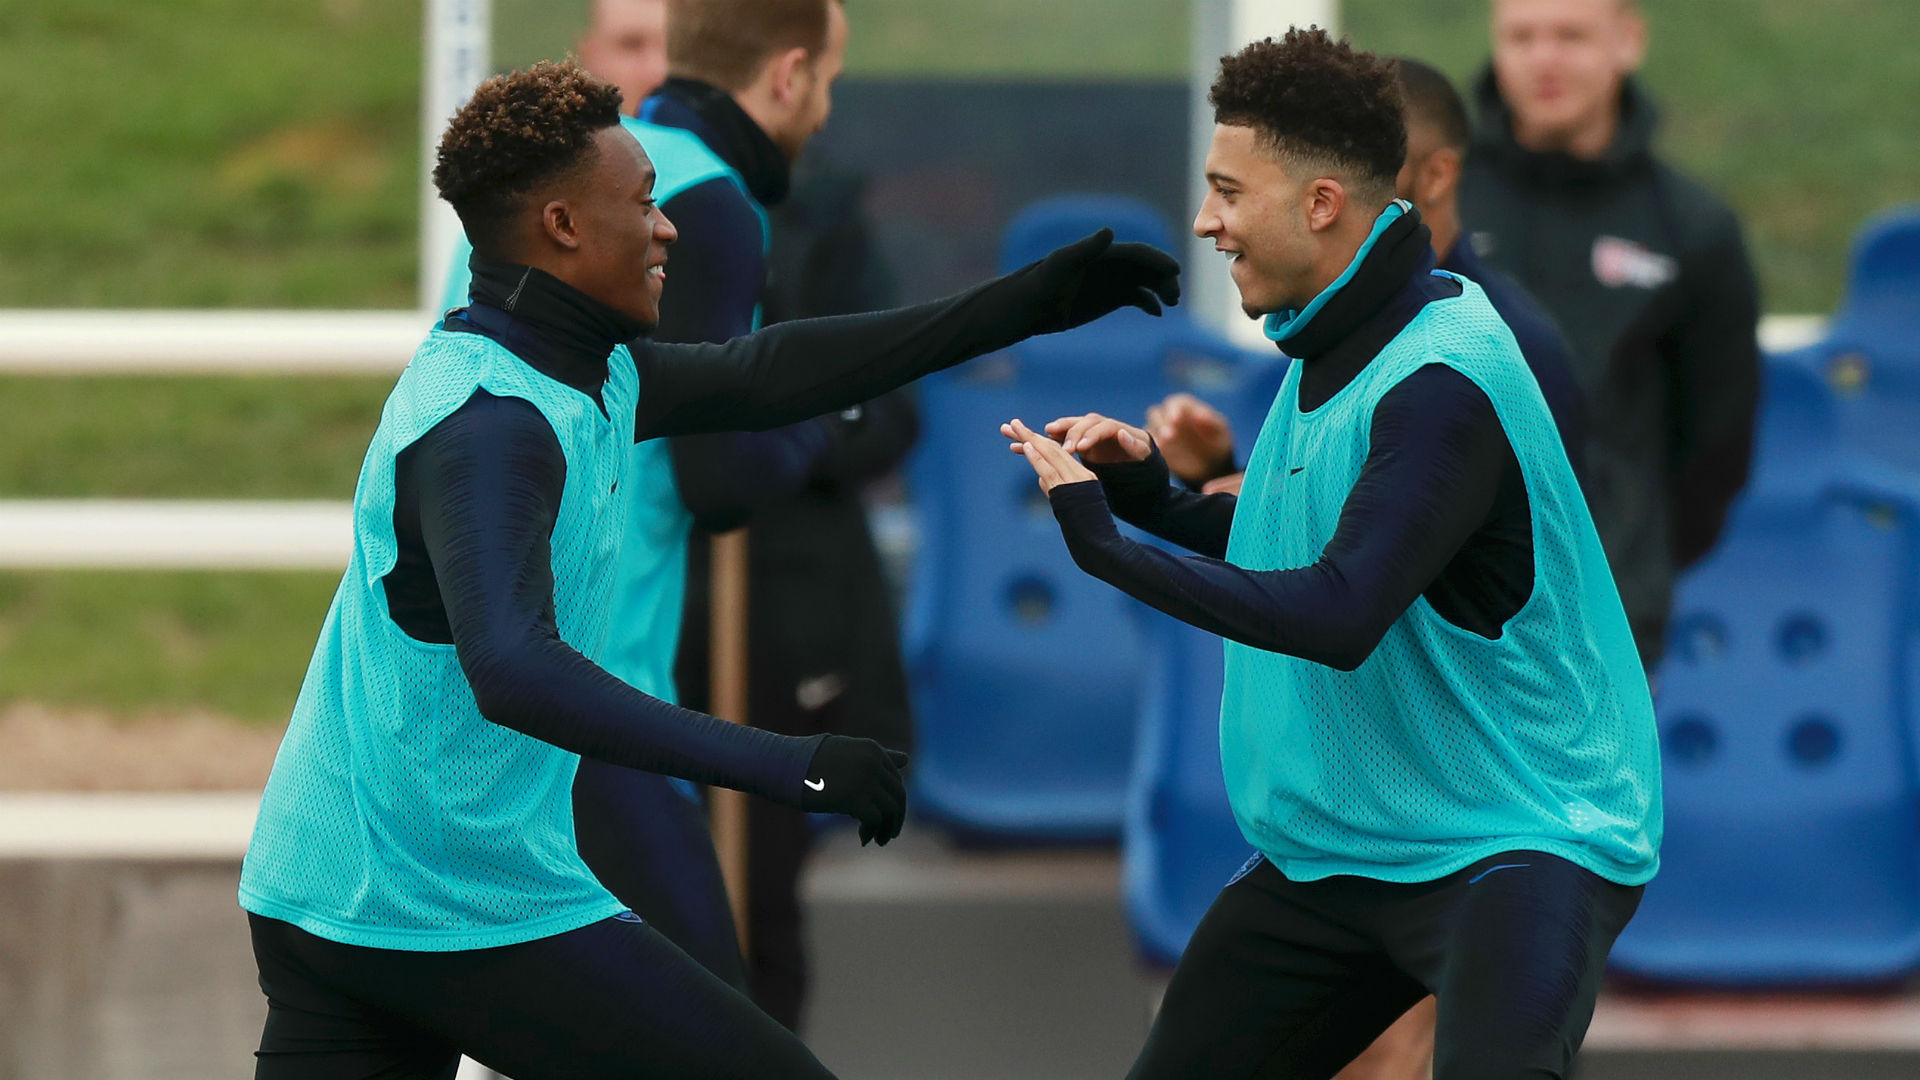 Southgate 'won't hesitate' to start Sancho, Hudson-Odoi after Rashford injury